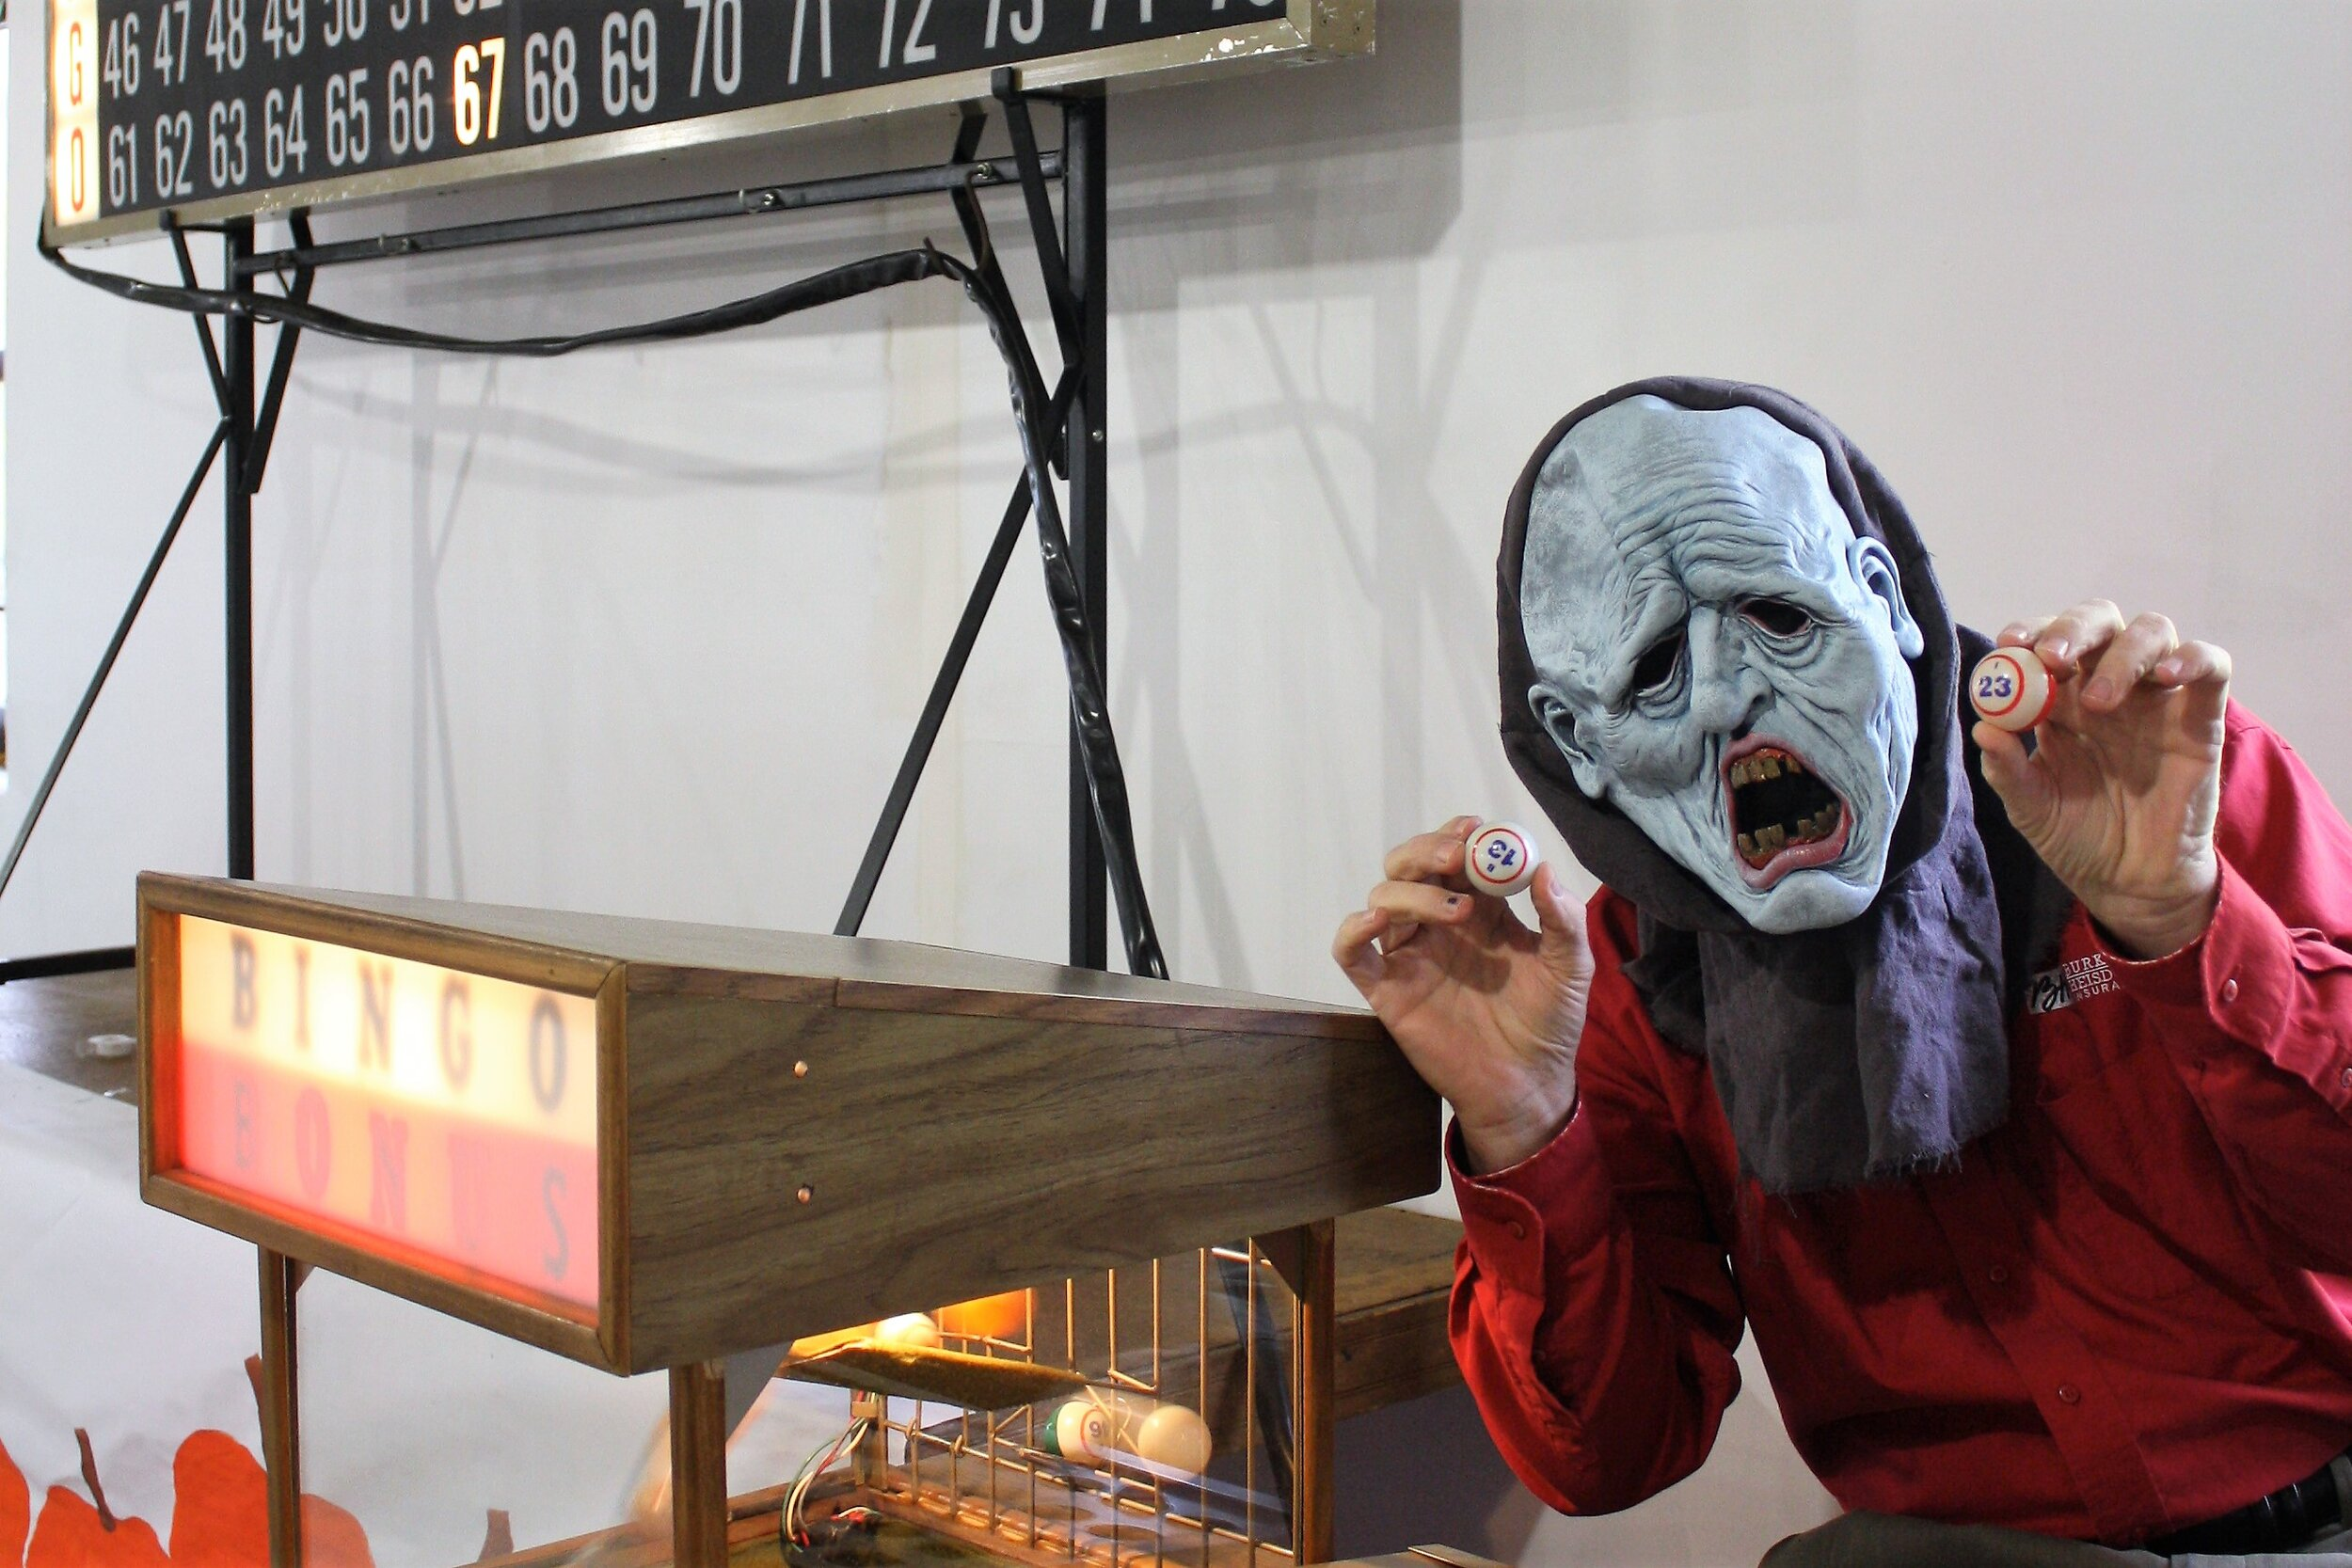 Bingo caller Phil Burkart calling upon the Bingo Beings of the beyond for good luck and fortune at Spooktacular Bingo.